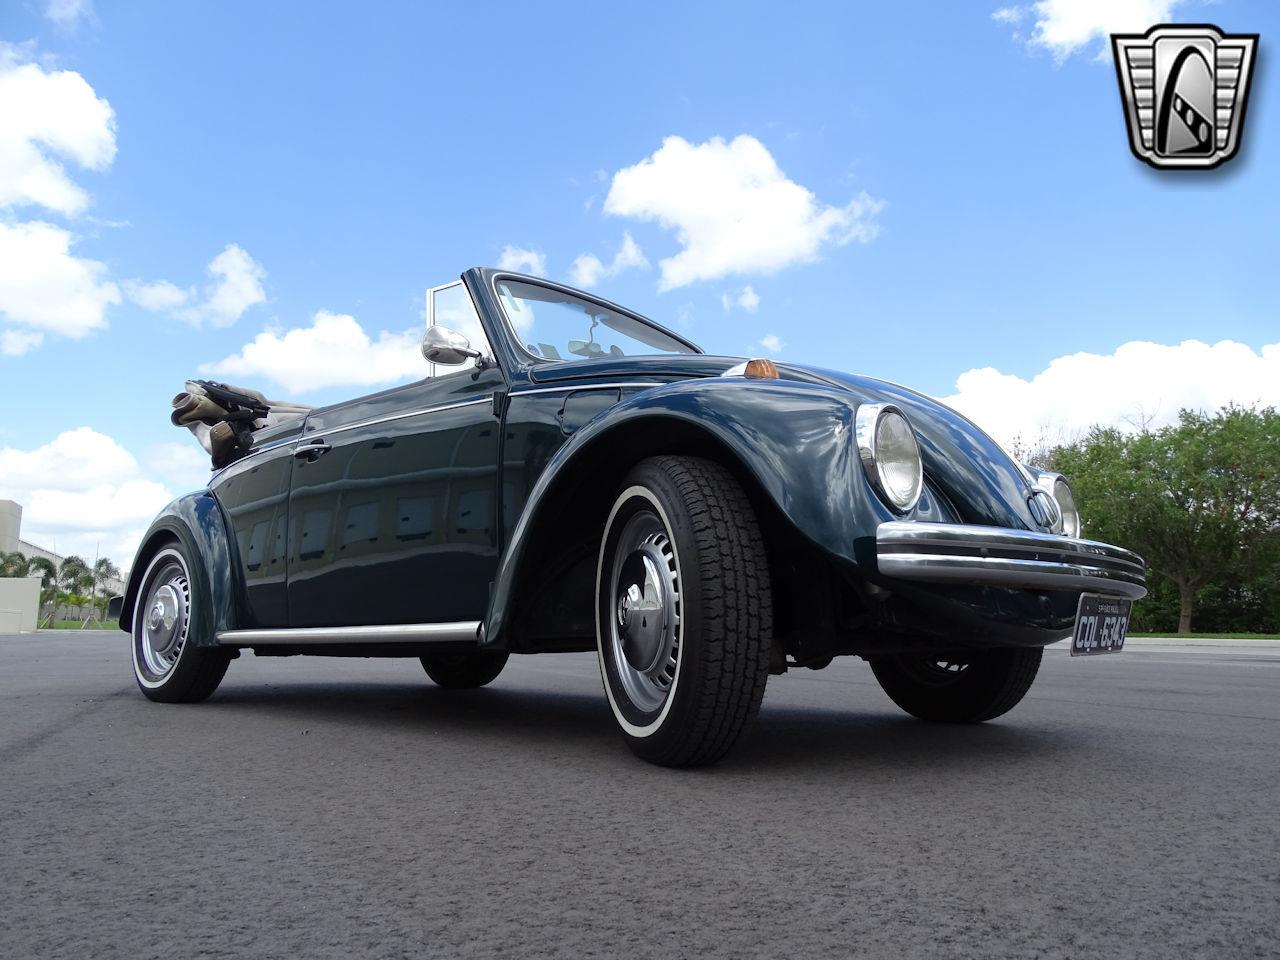 1978 Volkswagen Beetle (CC-1351360) for sale in O'Fallon, Illinois